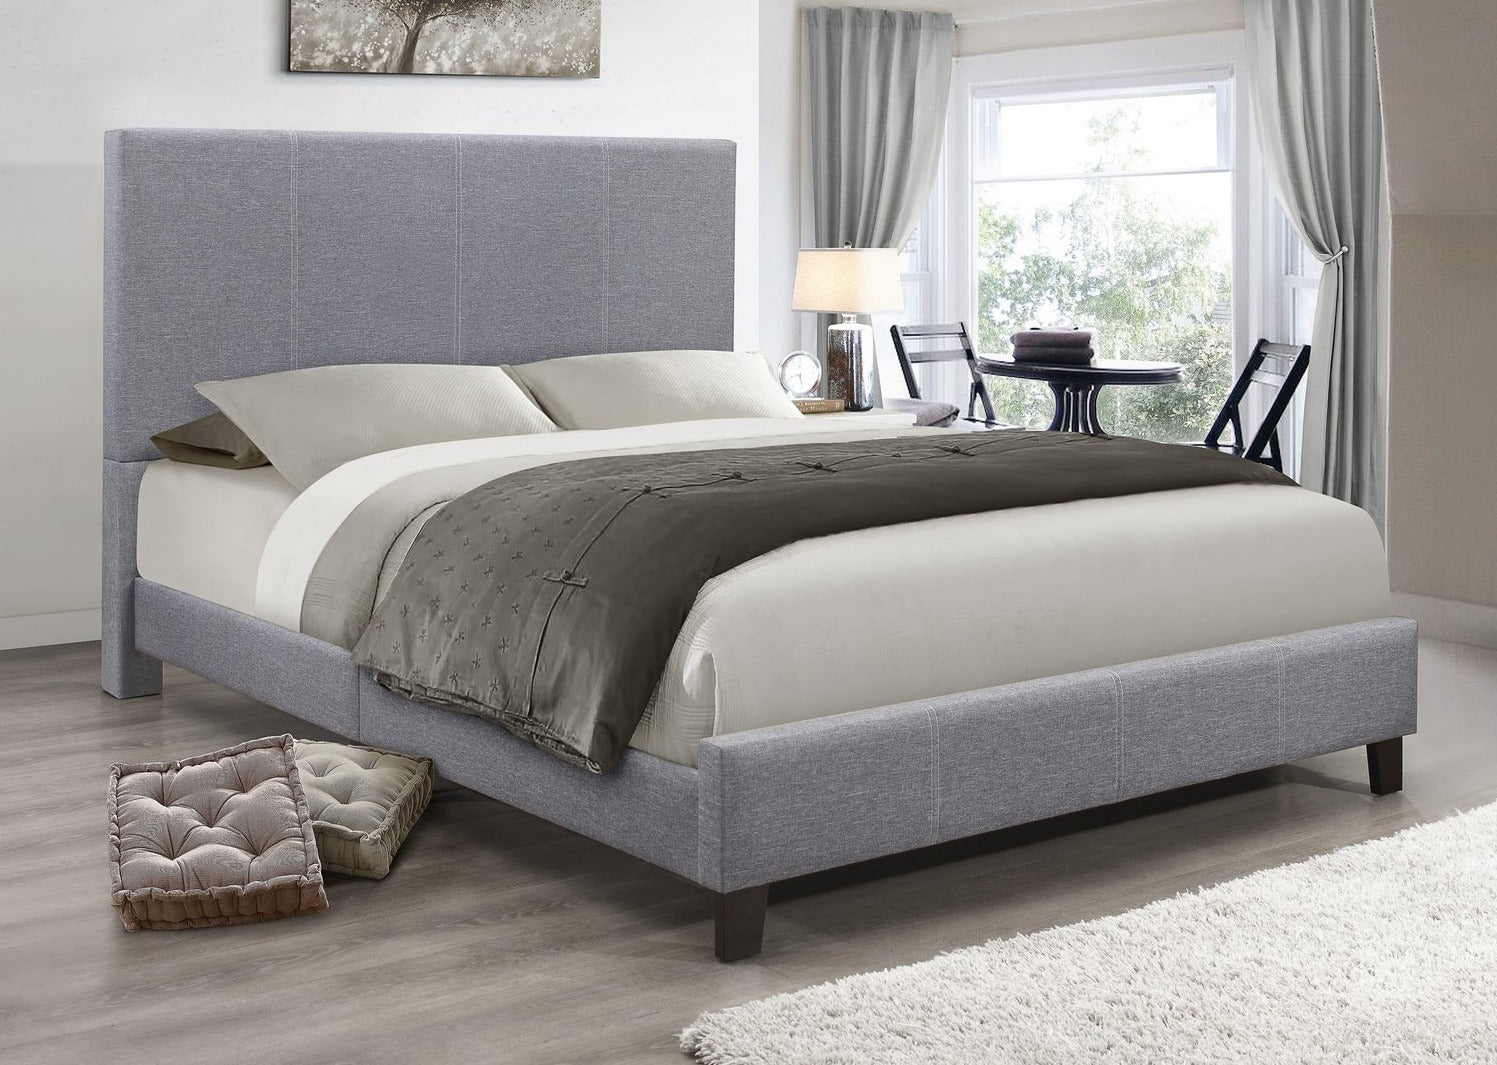 IF 5474 - Grey Fabric Bed -  Lit Gris